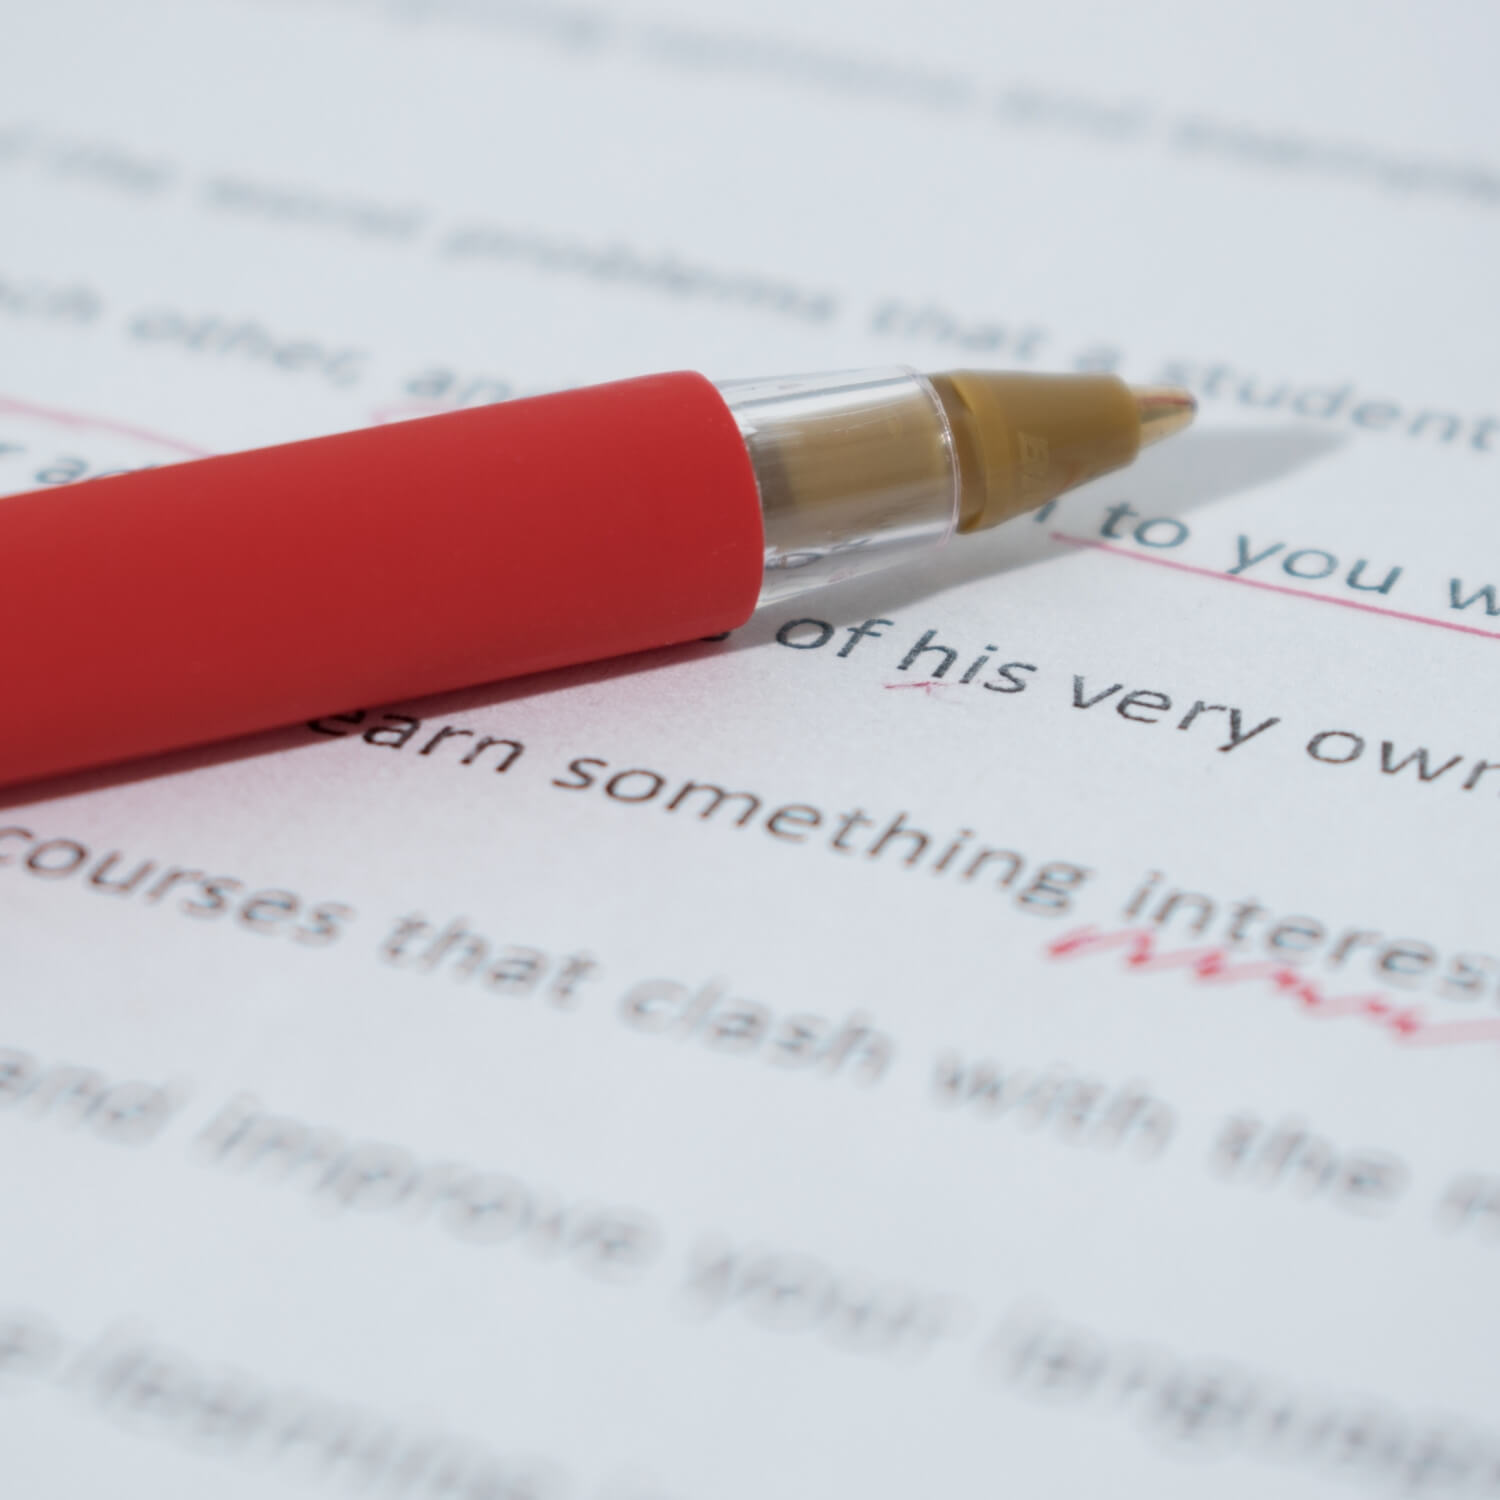 not-proofreading-and-using-poor-grammar